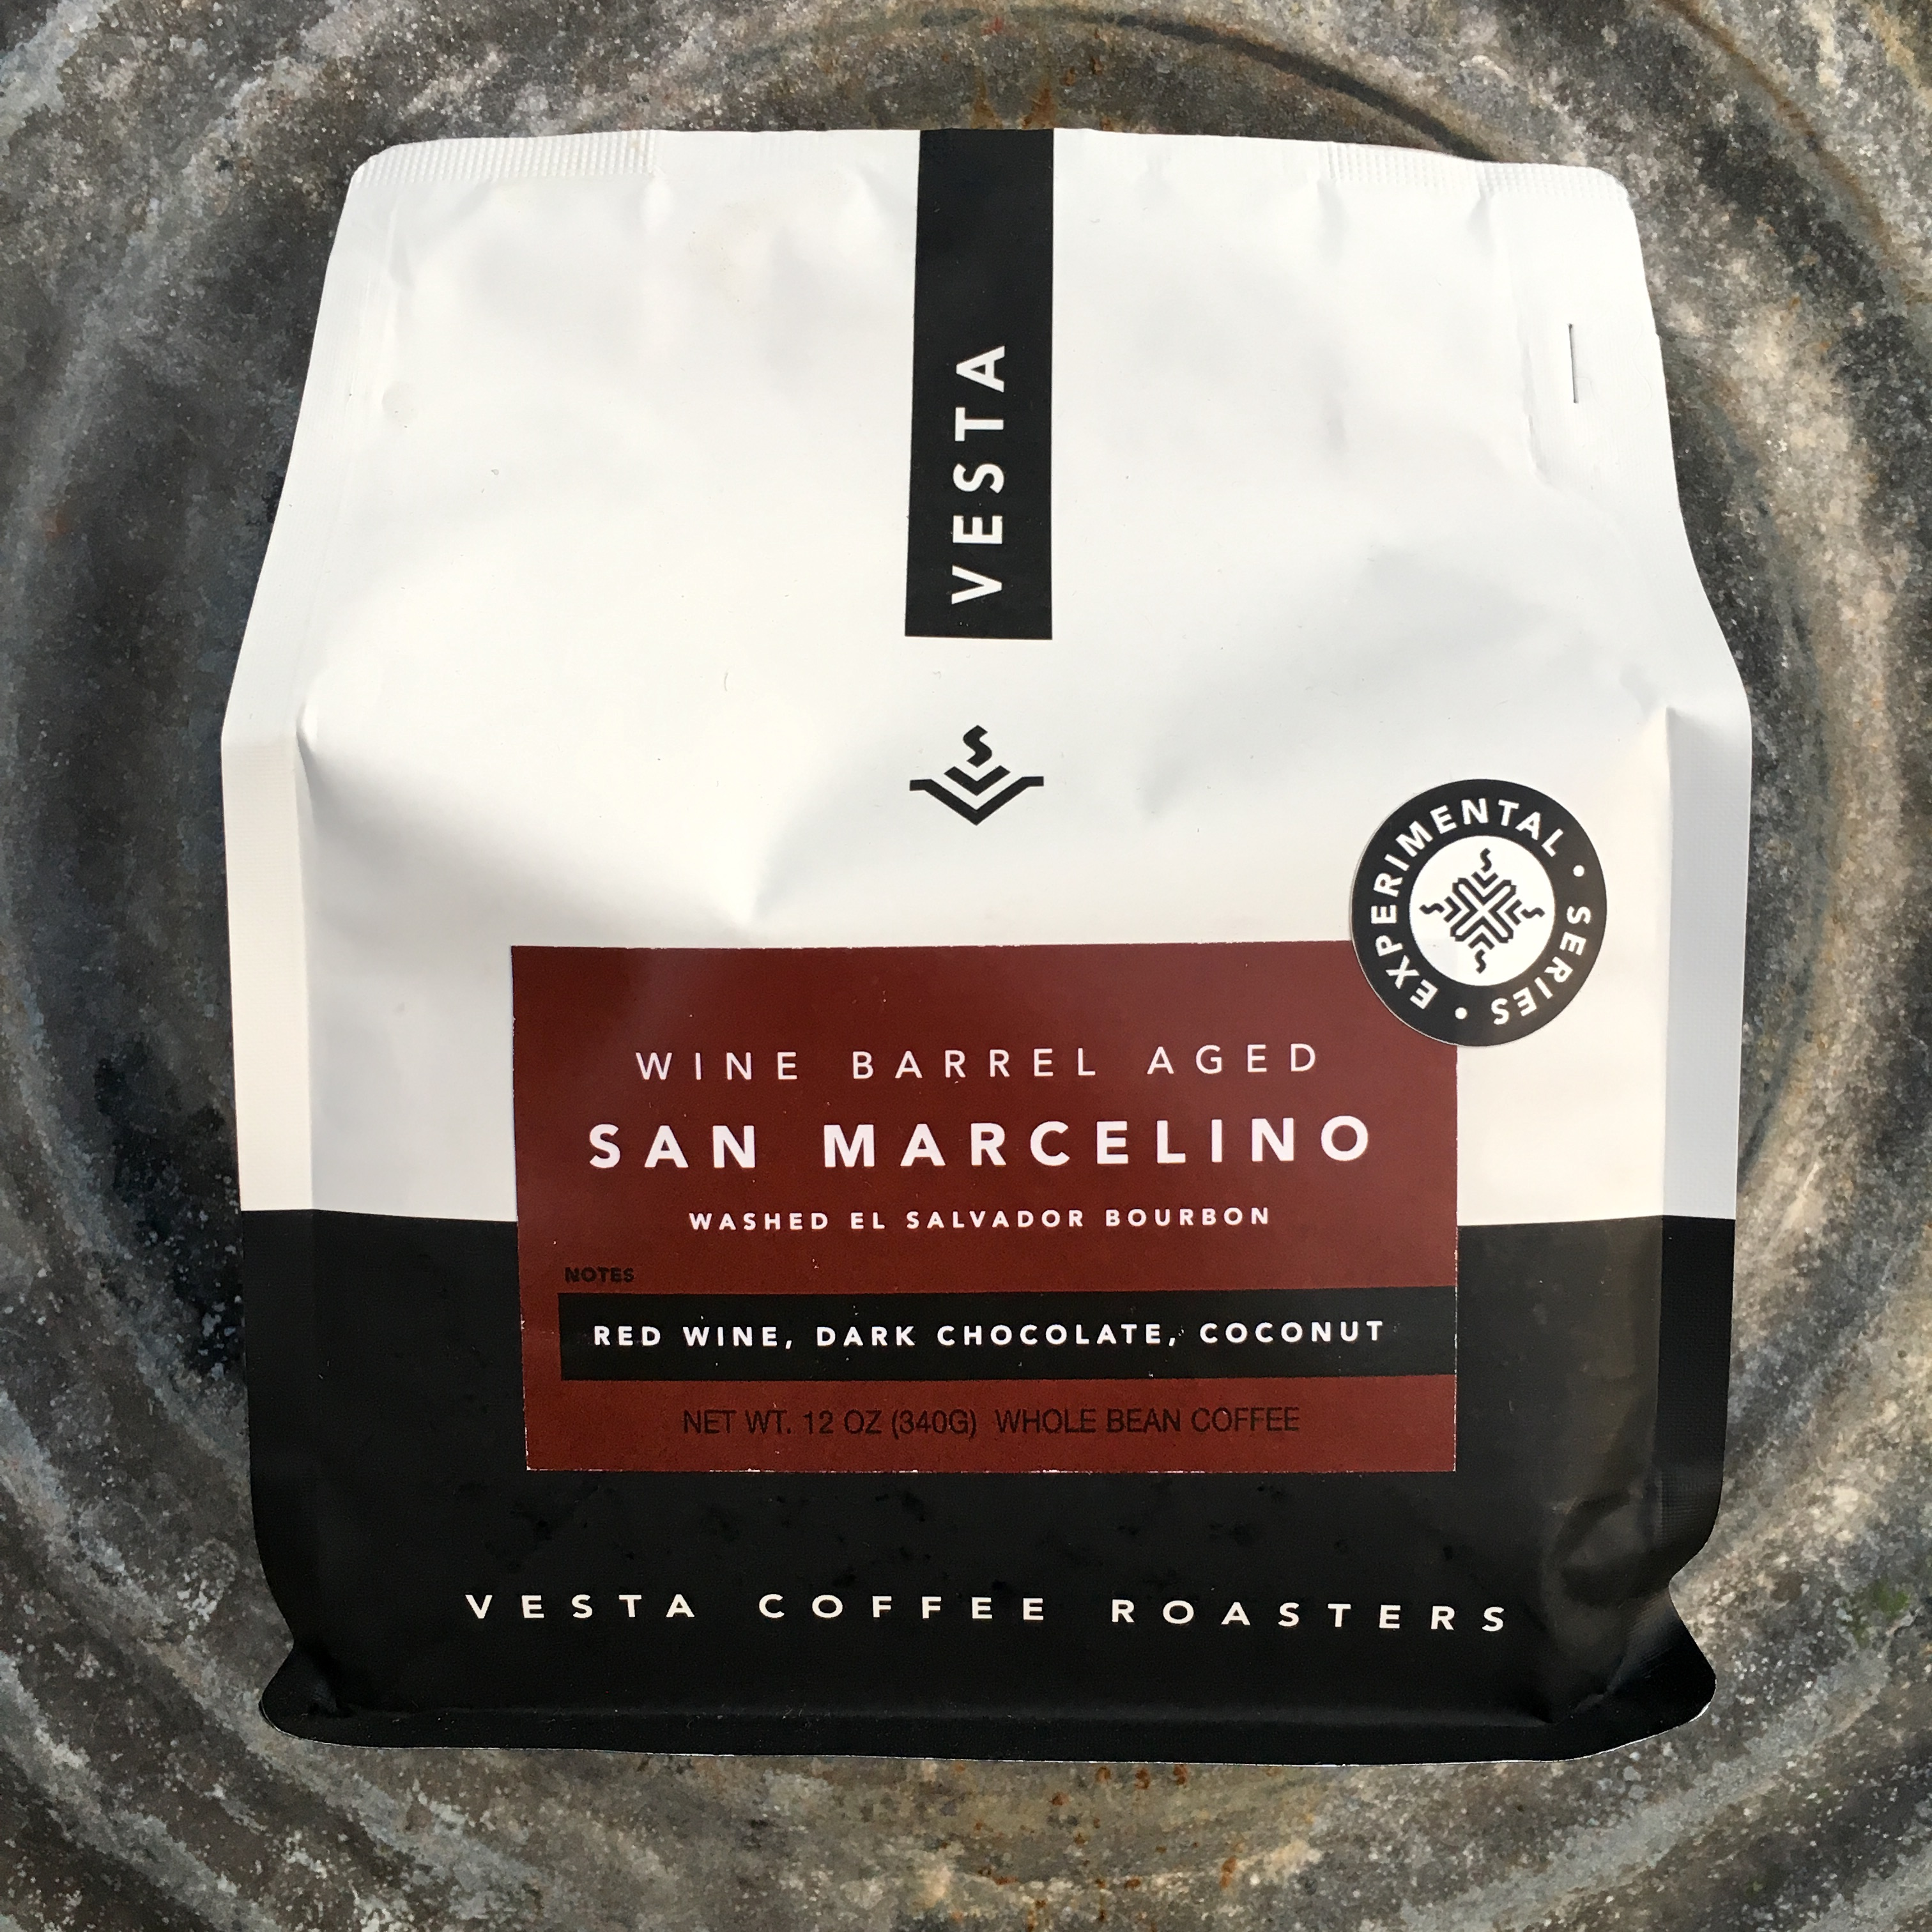 Vesta Coffee Roasters Wine Barrel Aged San Marcelino